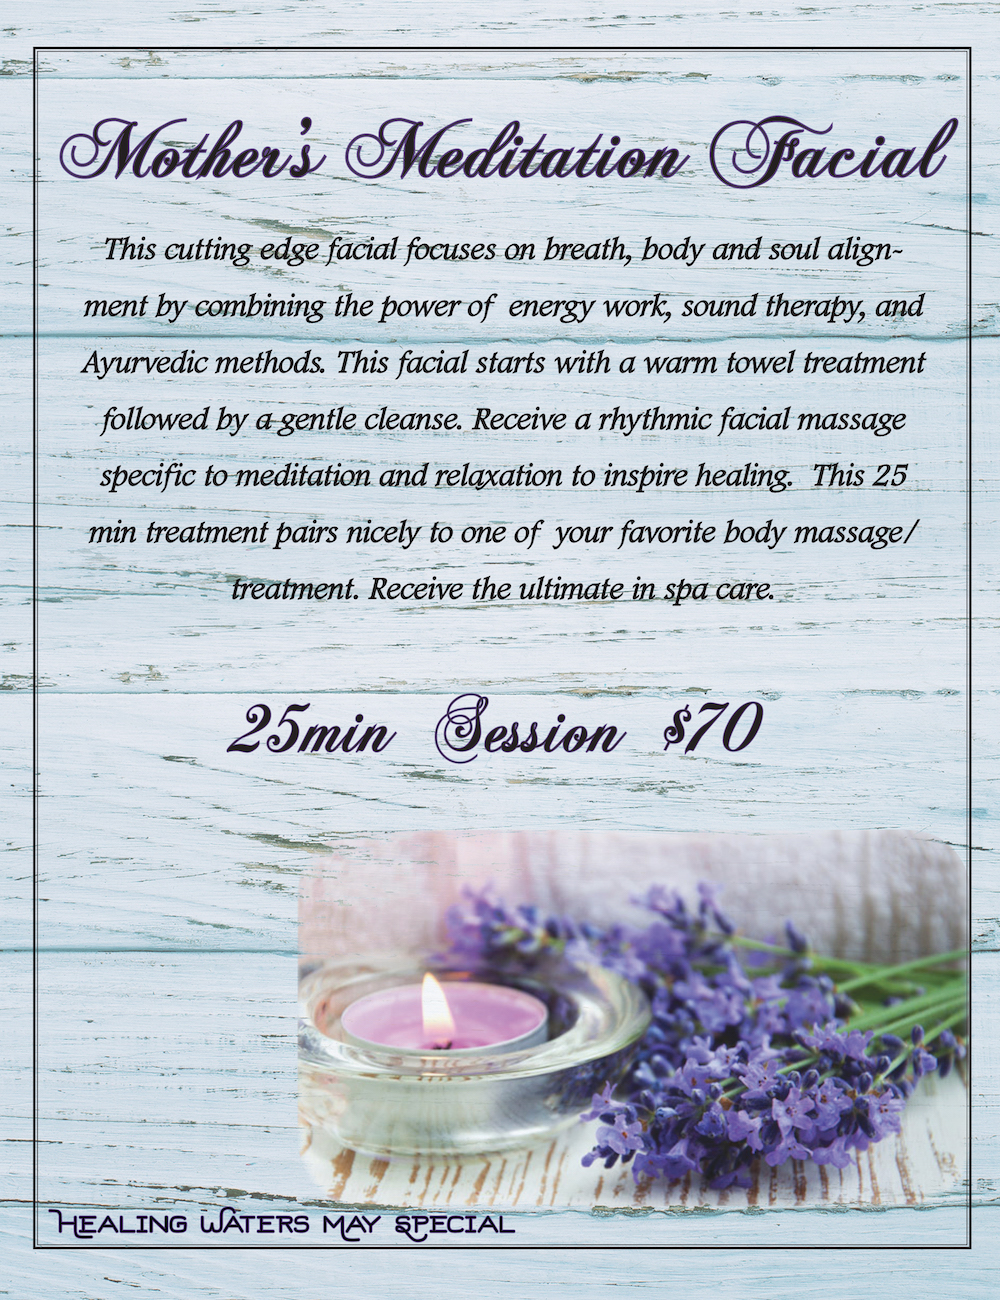 May Facial Special That Mom Will Love!